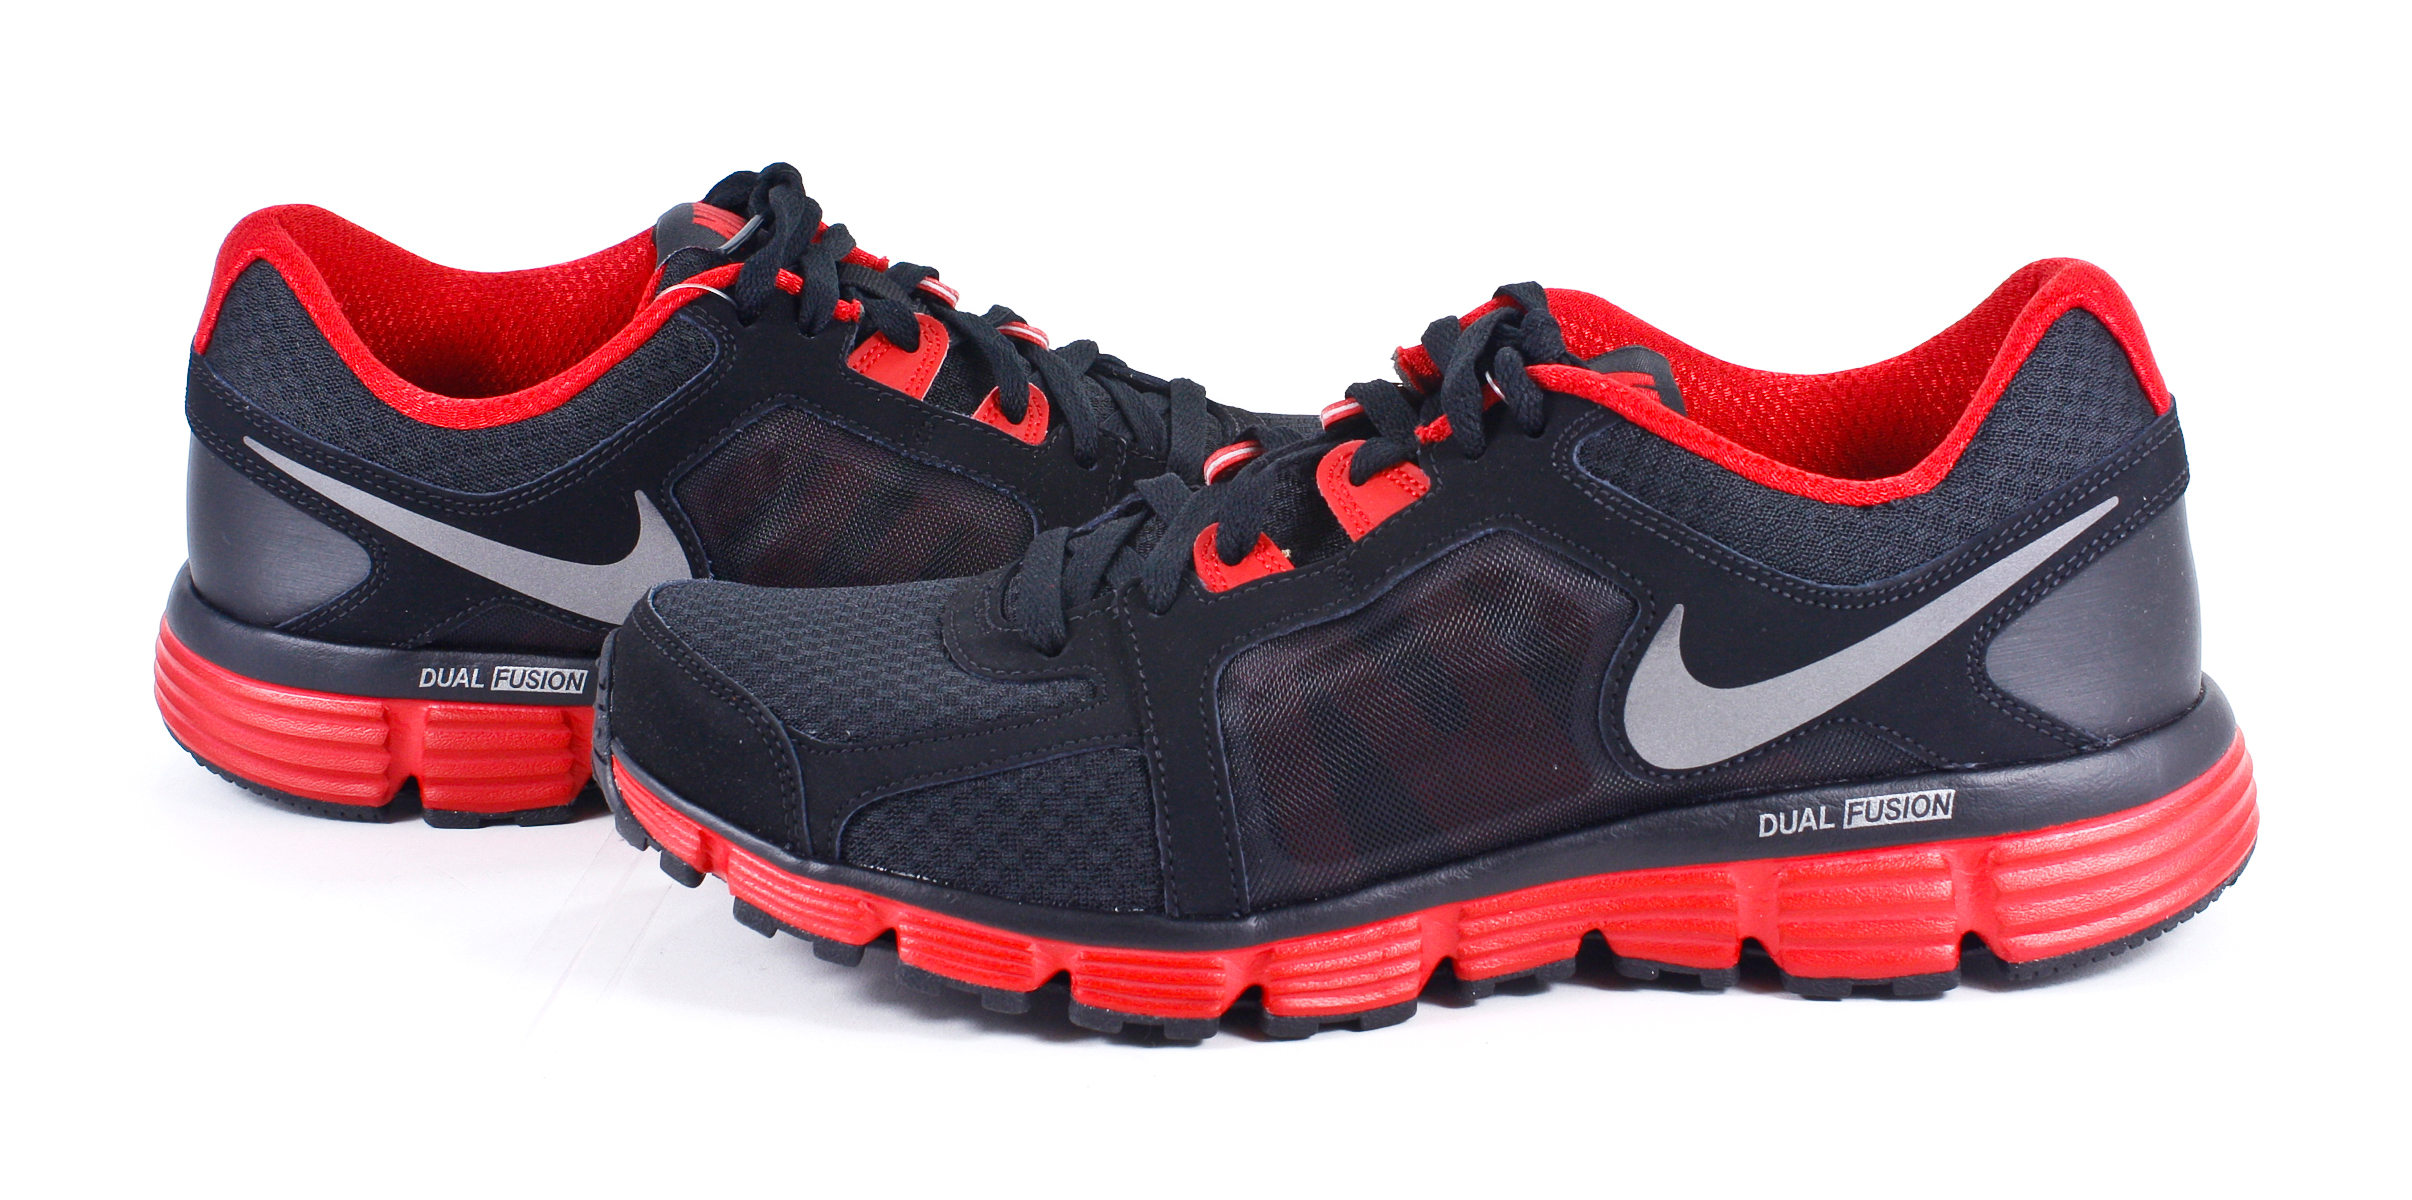 nike dual fusion st 2 s black gray running shoes